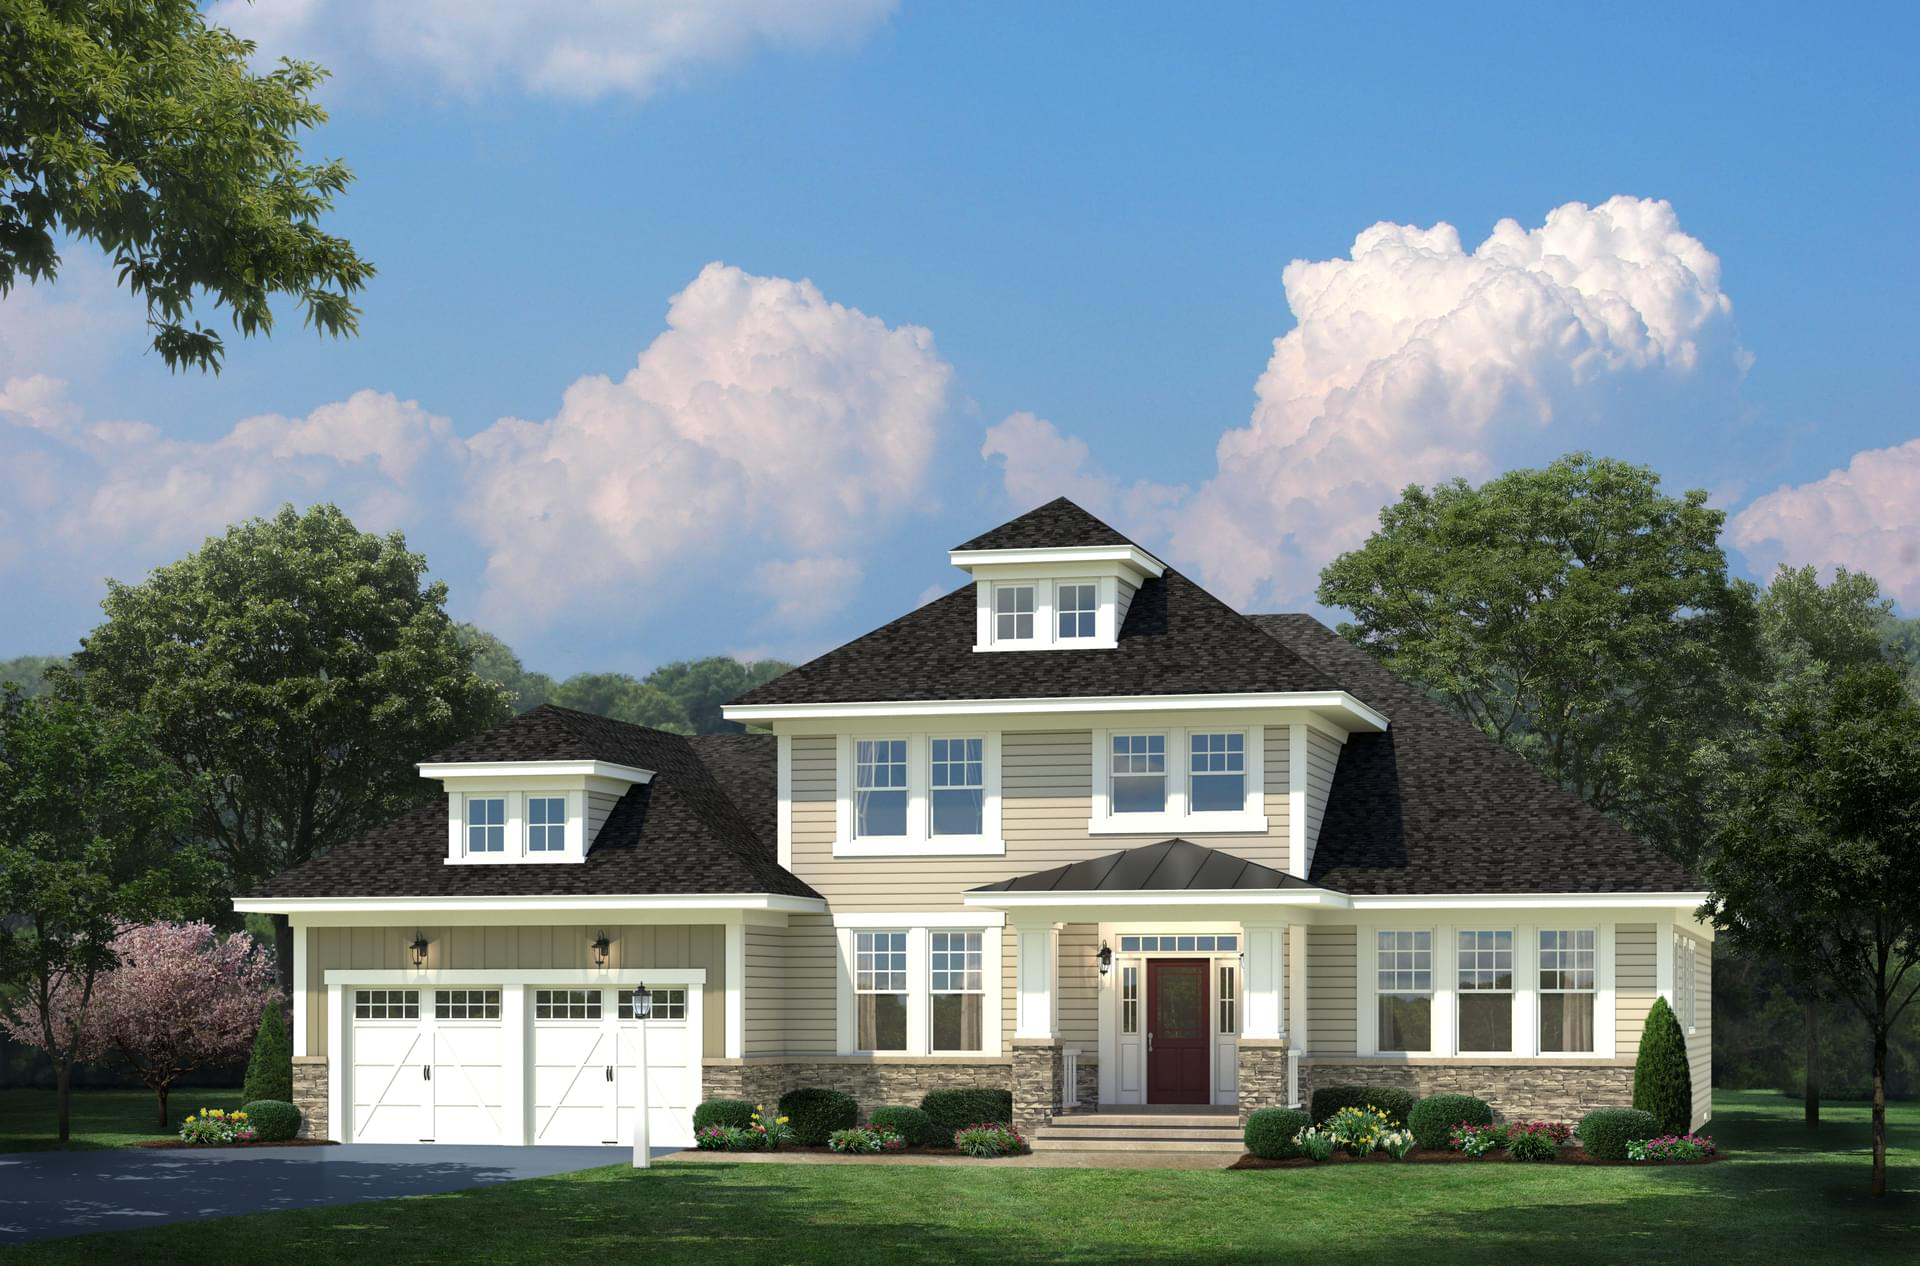 The devonshire craftsman new home in riva md blue heron for The devonshire